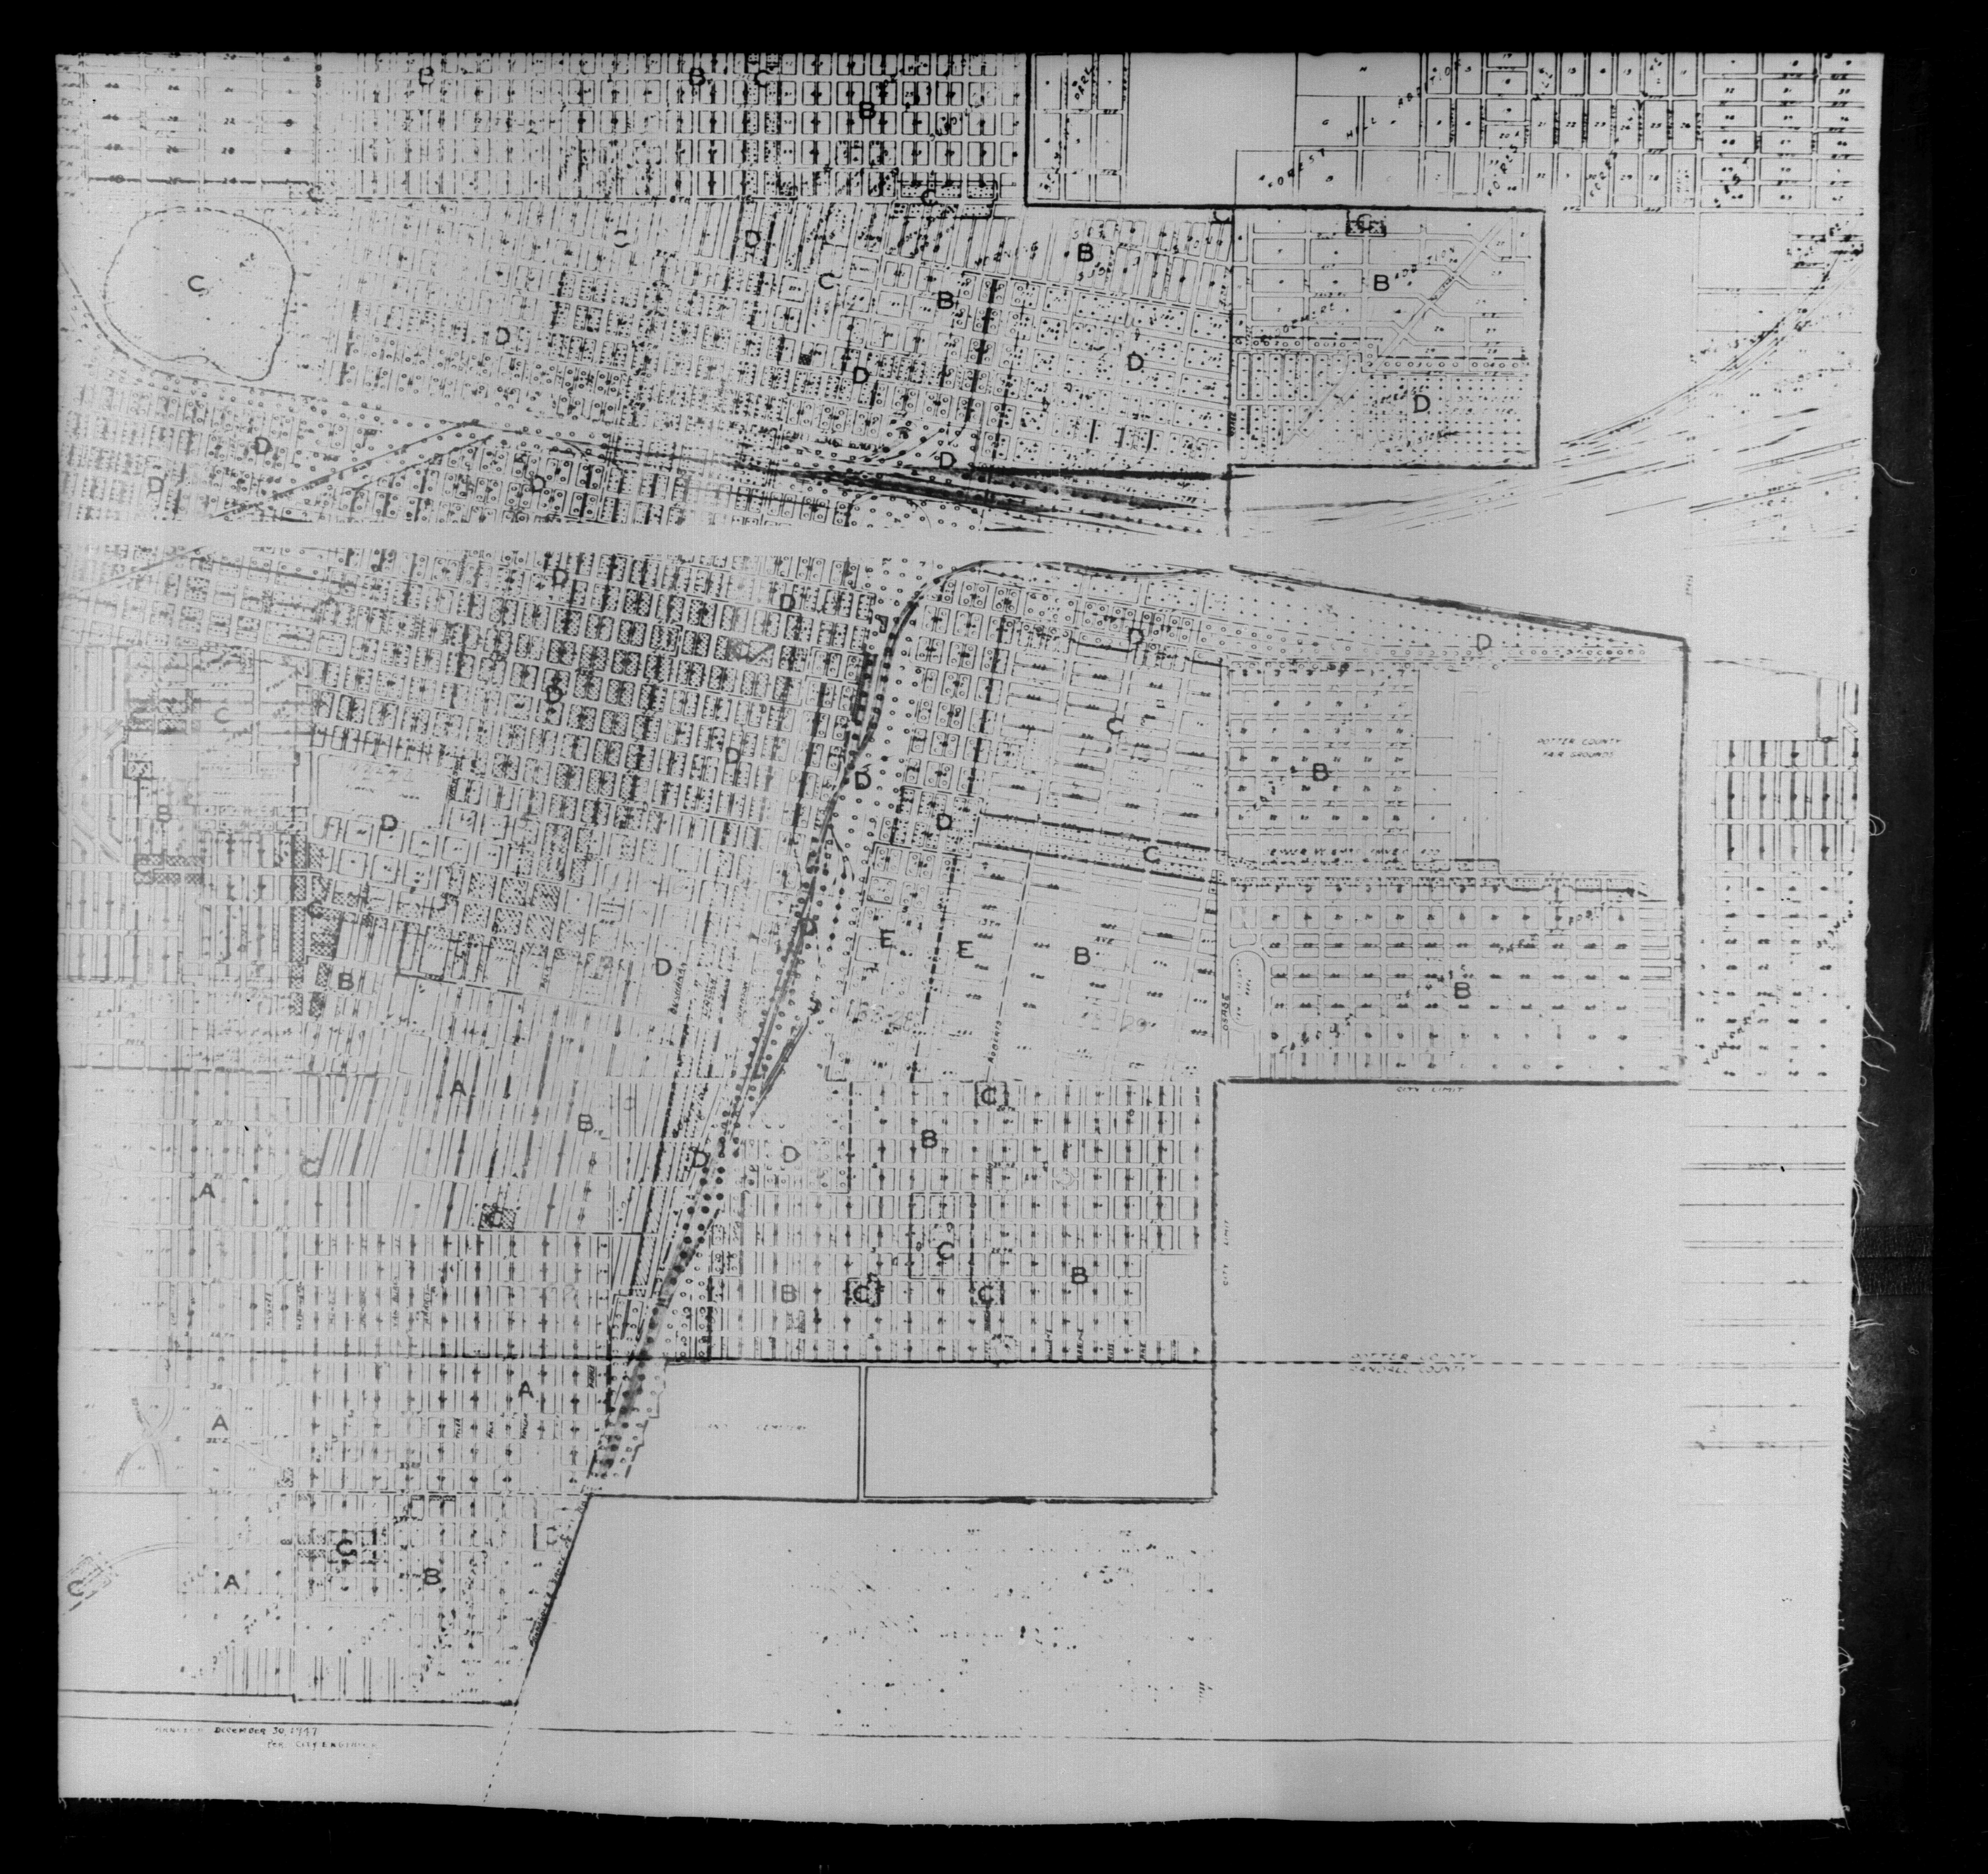 1940 Census Texas Enumeration District Maps - Perry